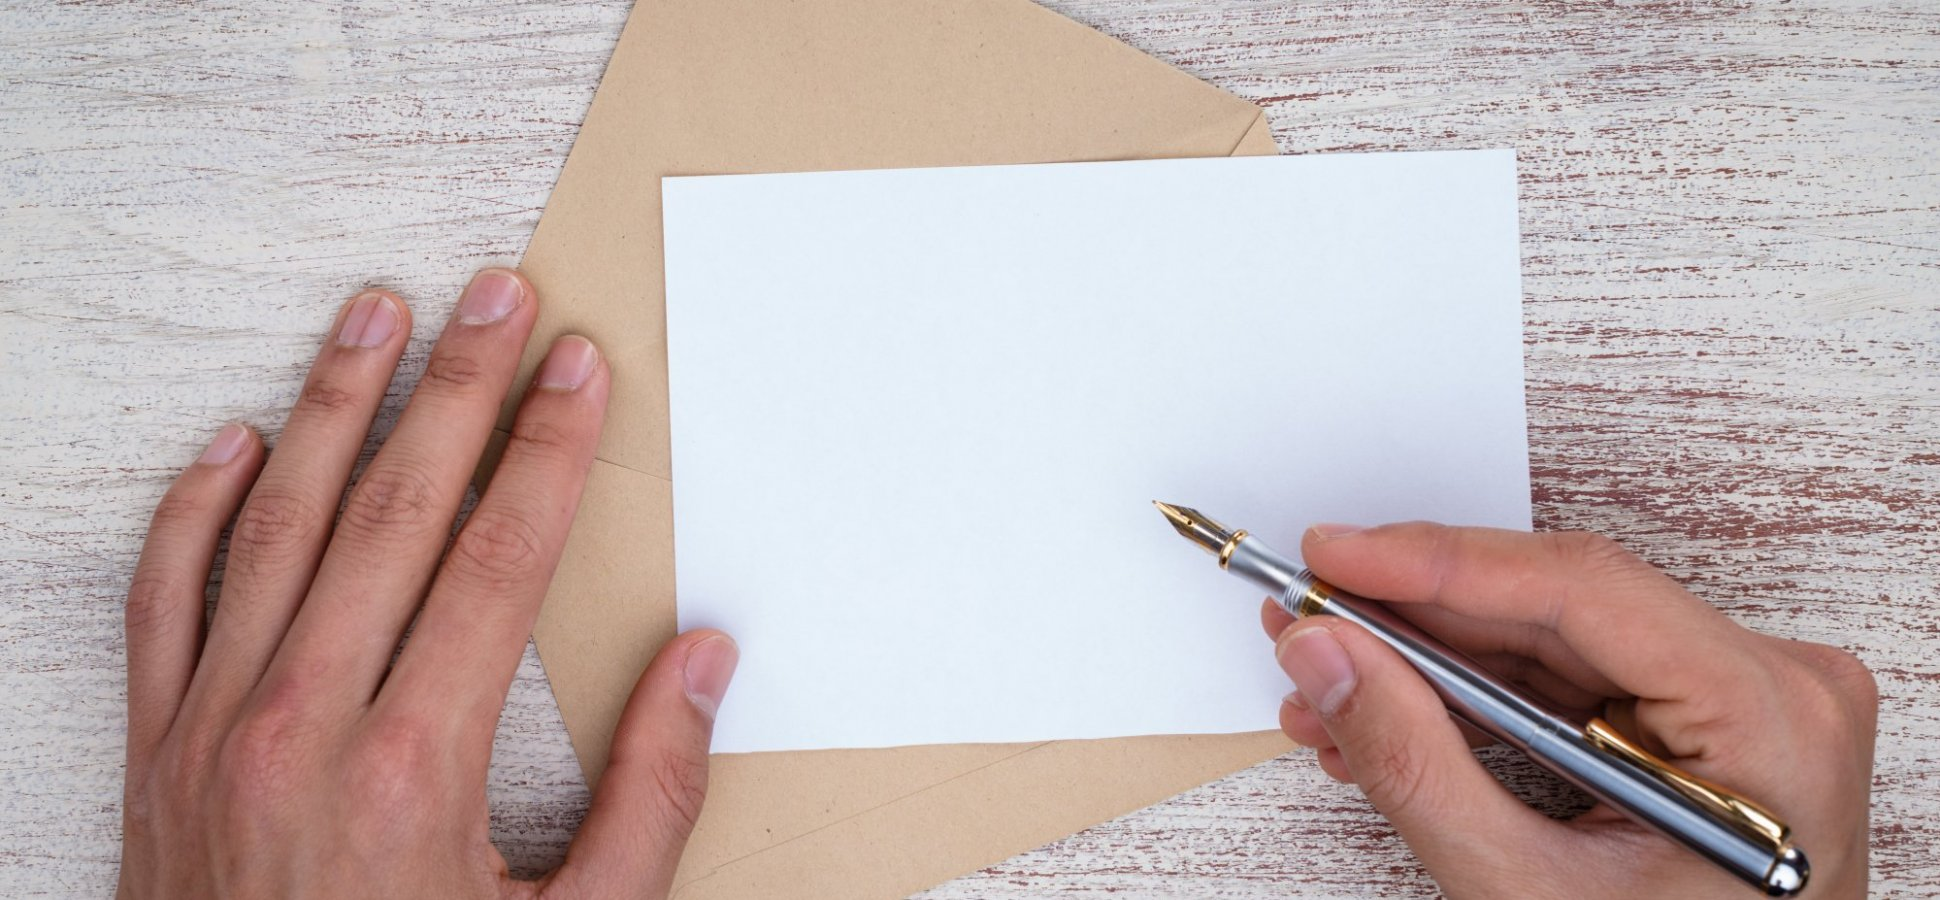 Handwritten Notes Are Still the Best Way to Solidify Your Customer Relationships. Here's How to Write a Good One